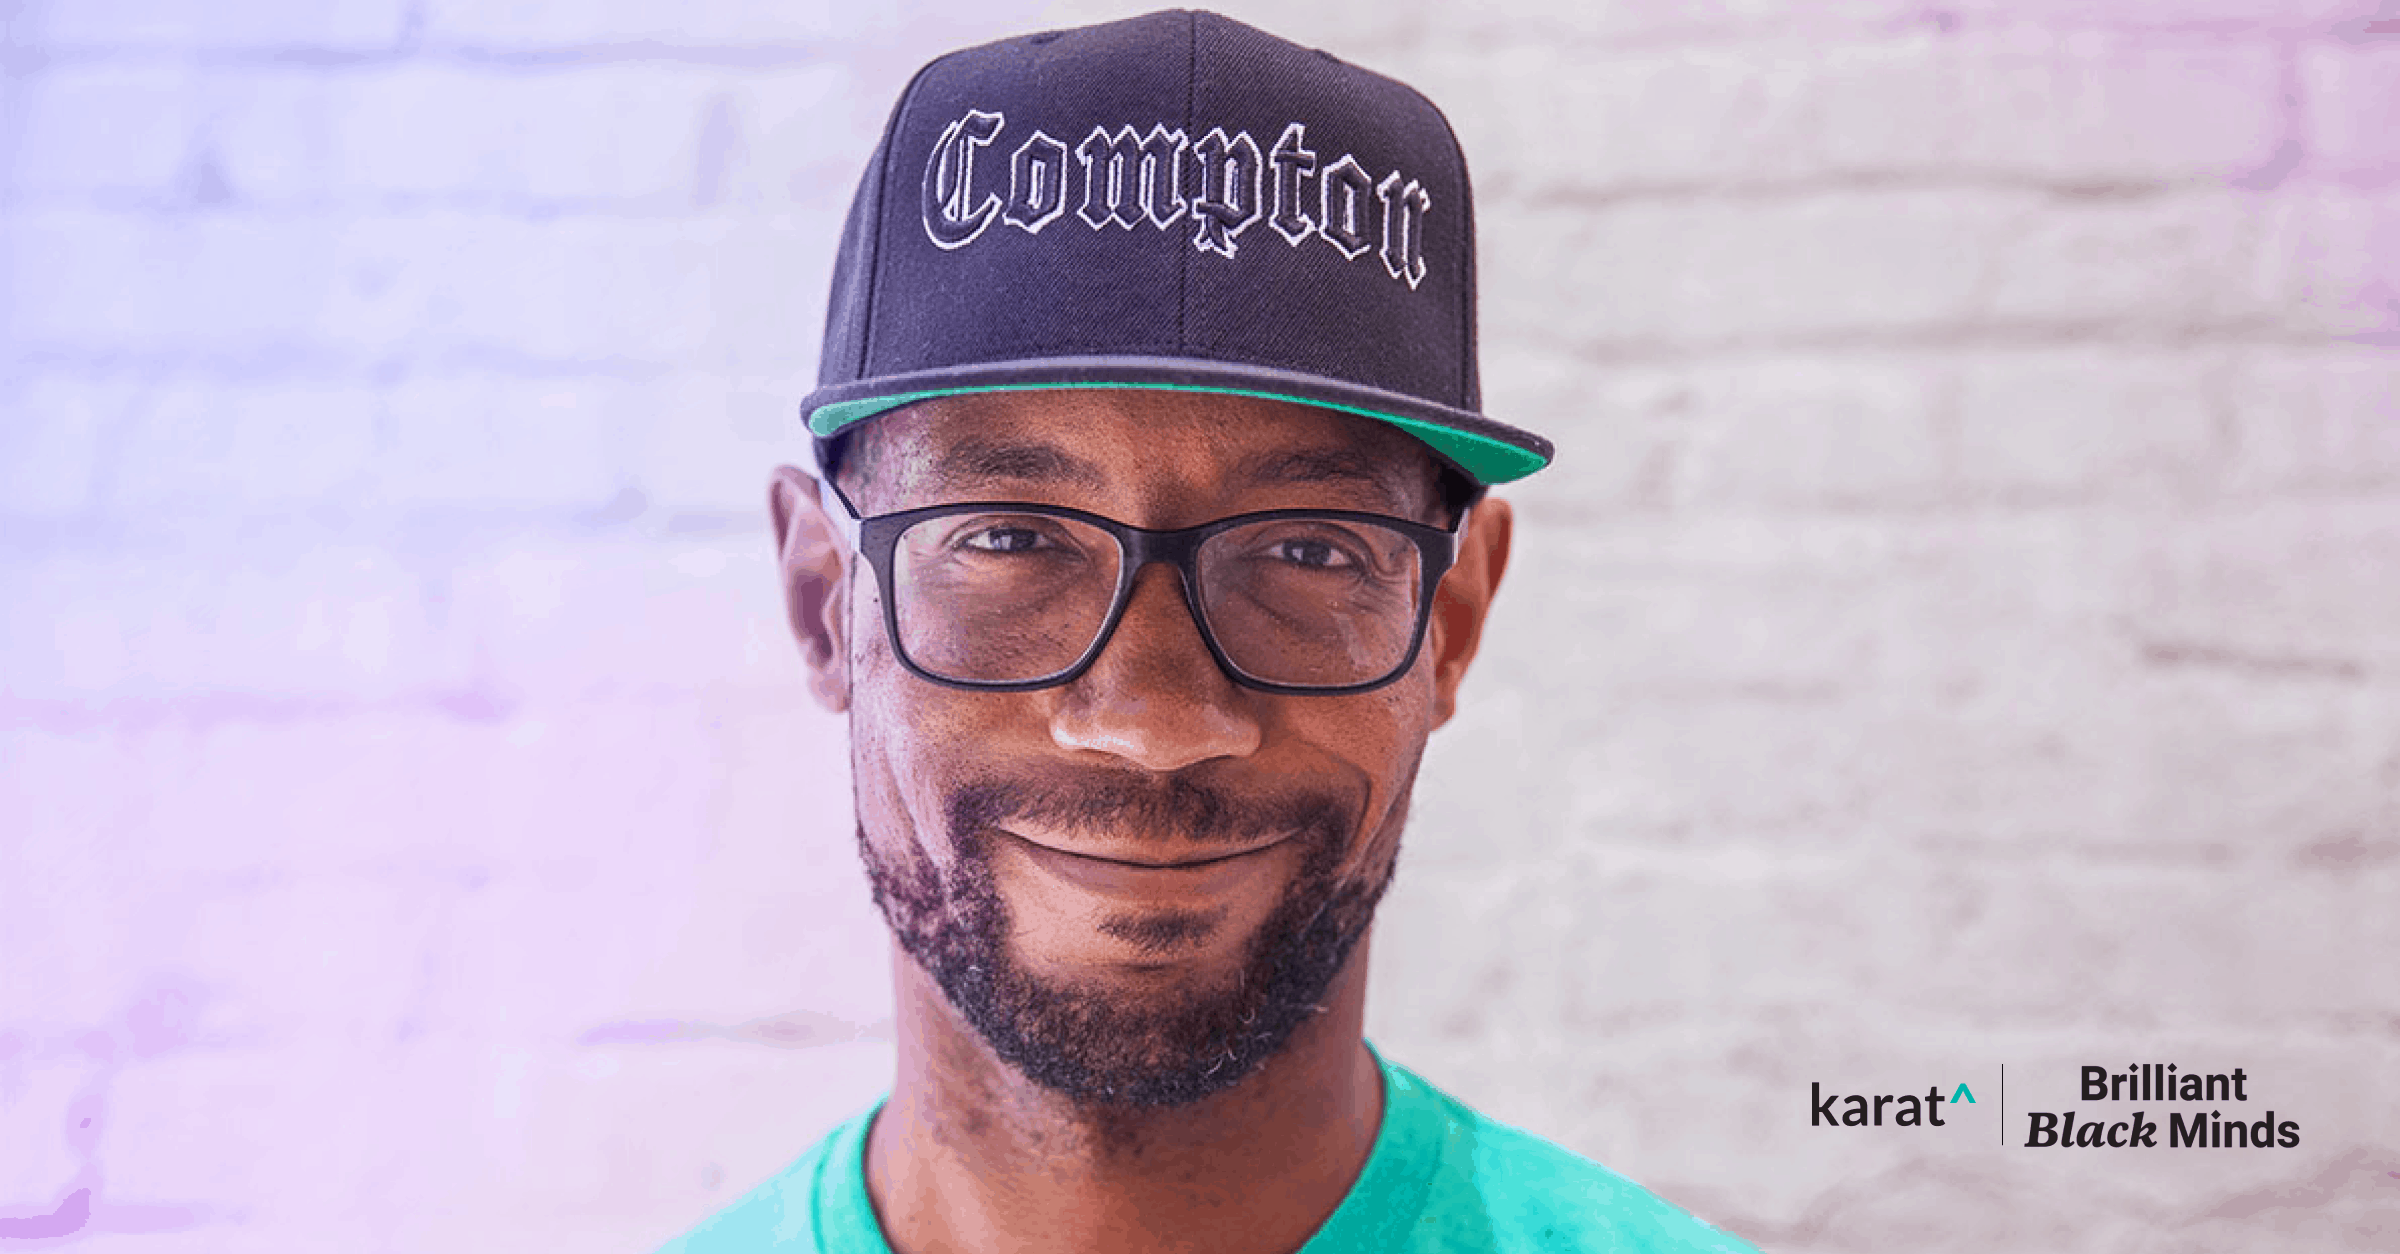 Google Software Engineer, Anthony Mays, shares his story and thoughts on the Brilliant Black Minds launch